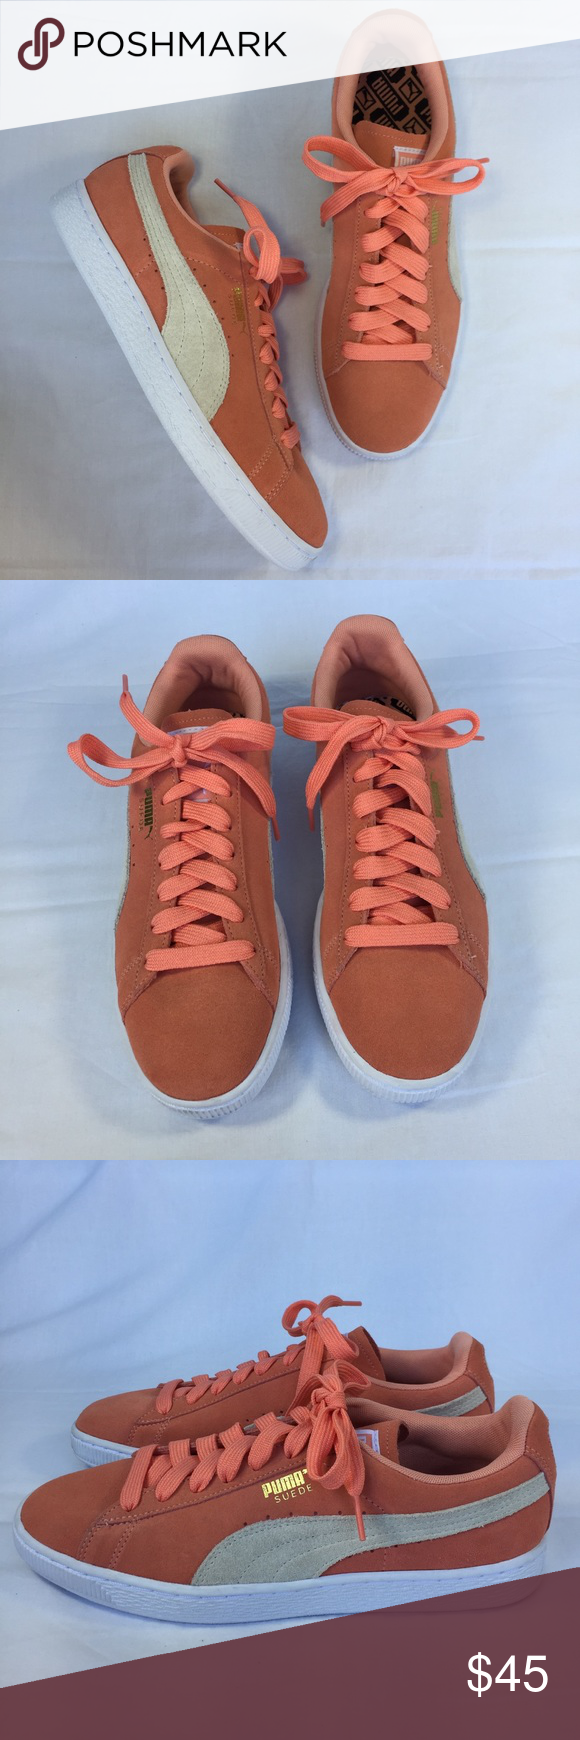 beb21fc7a63a PUMA Suede Classic Salmon Pink Shoes Sneakers NEW New without tags Puma  Suede Classic Salmon Pink